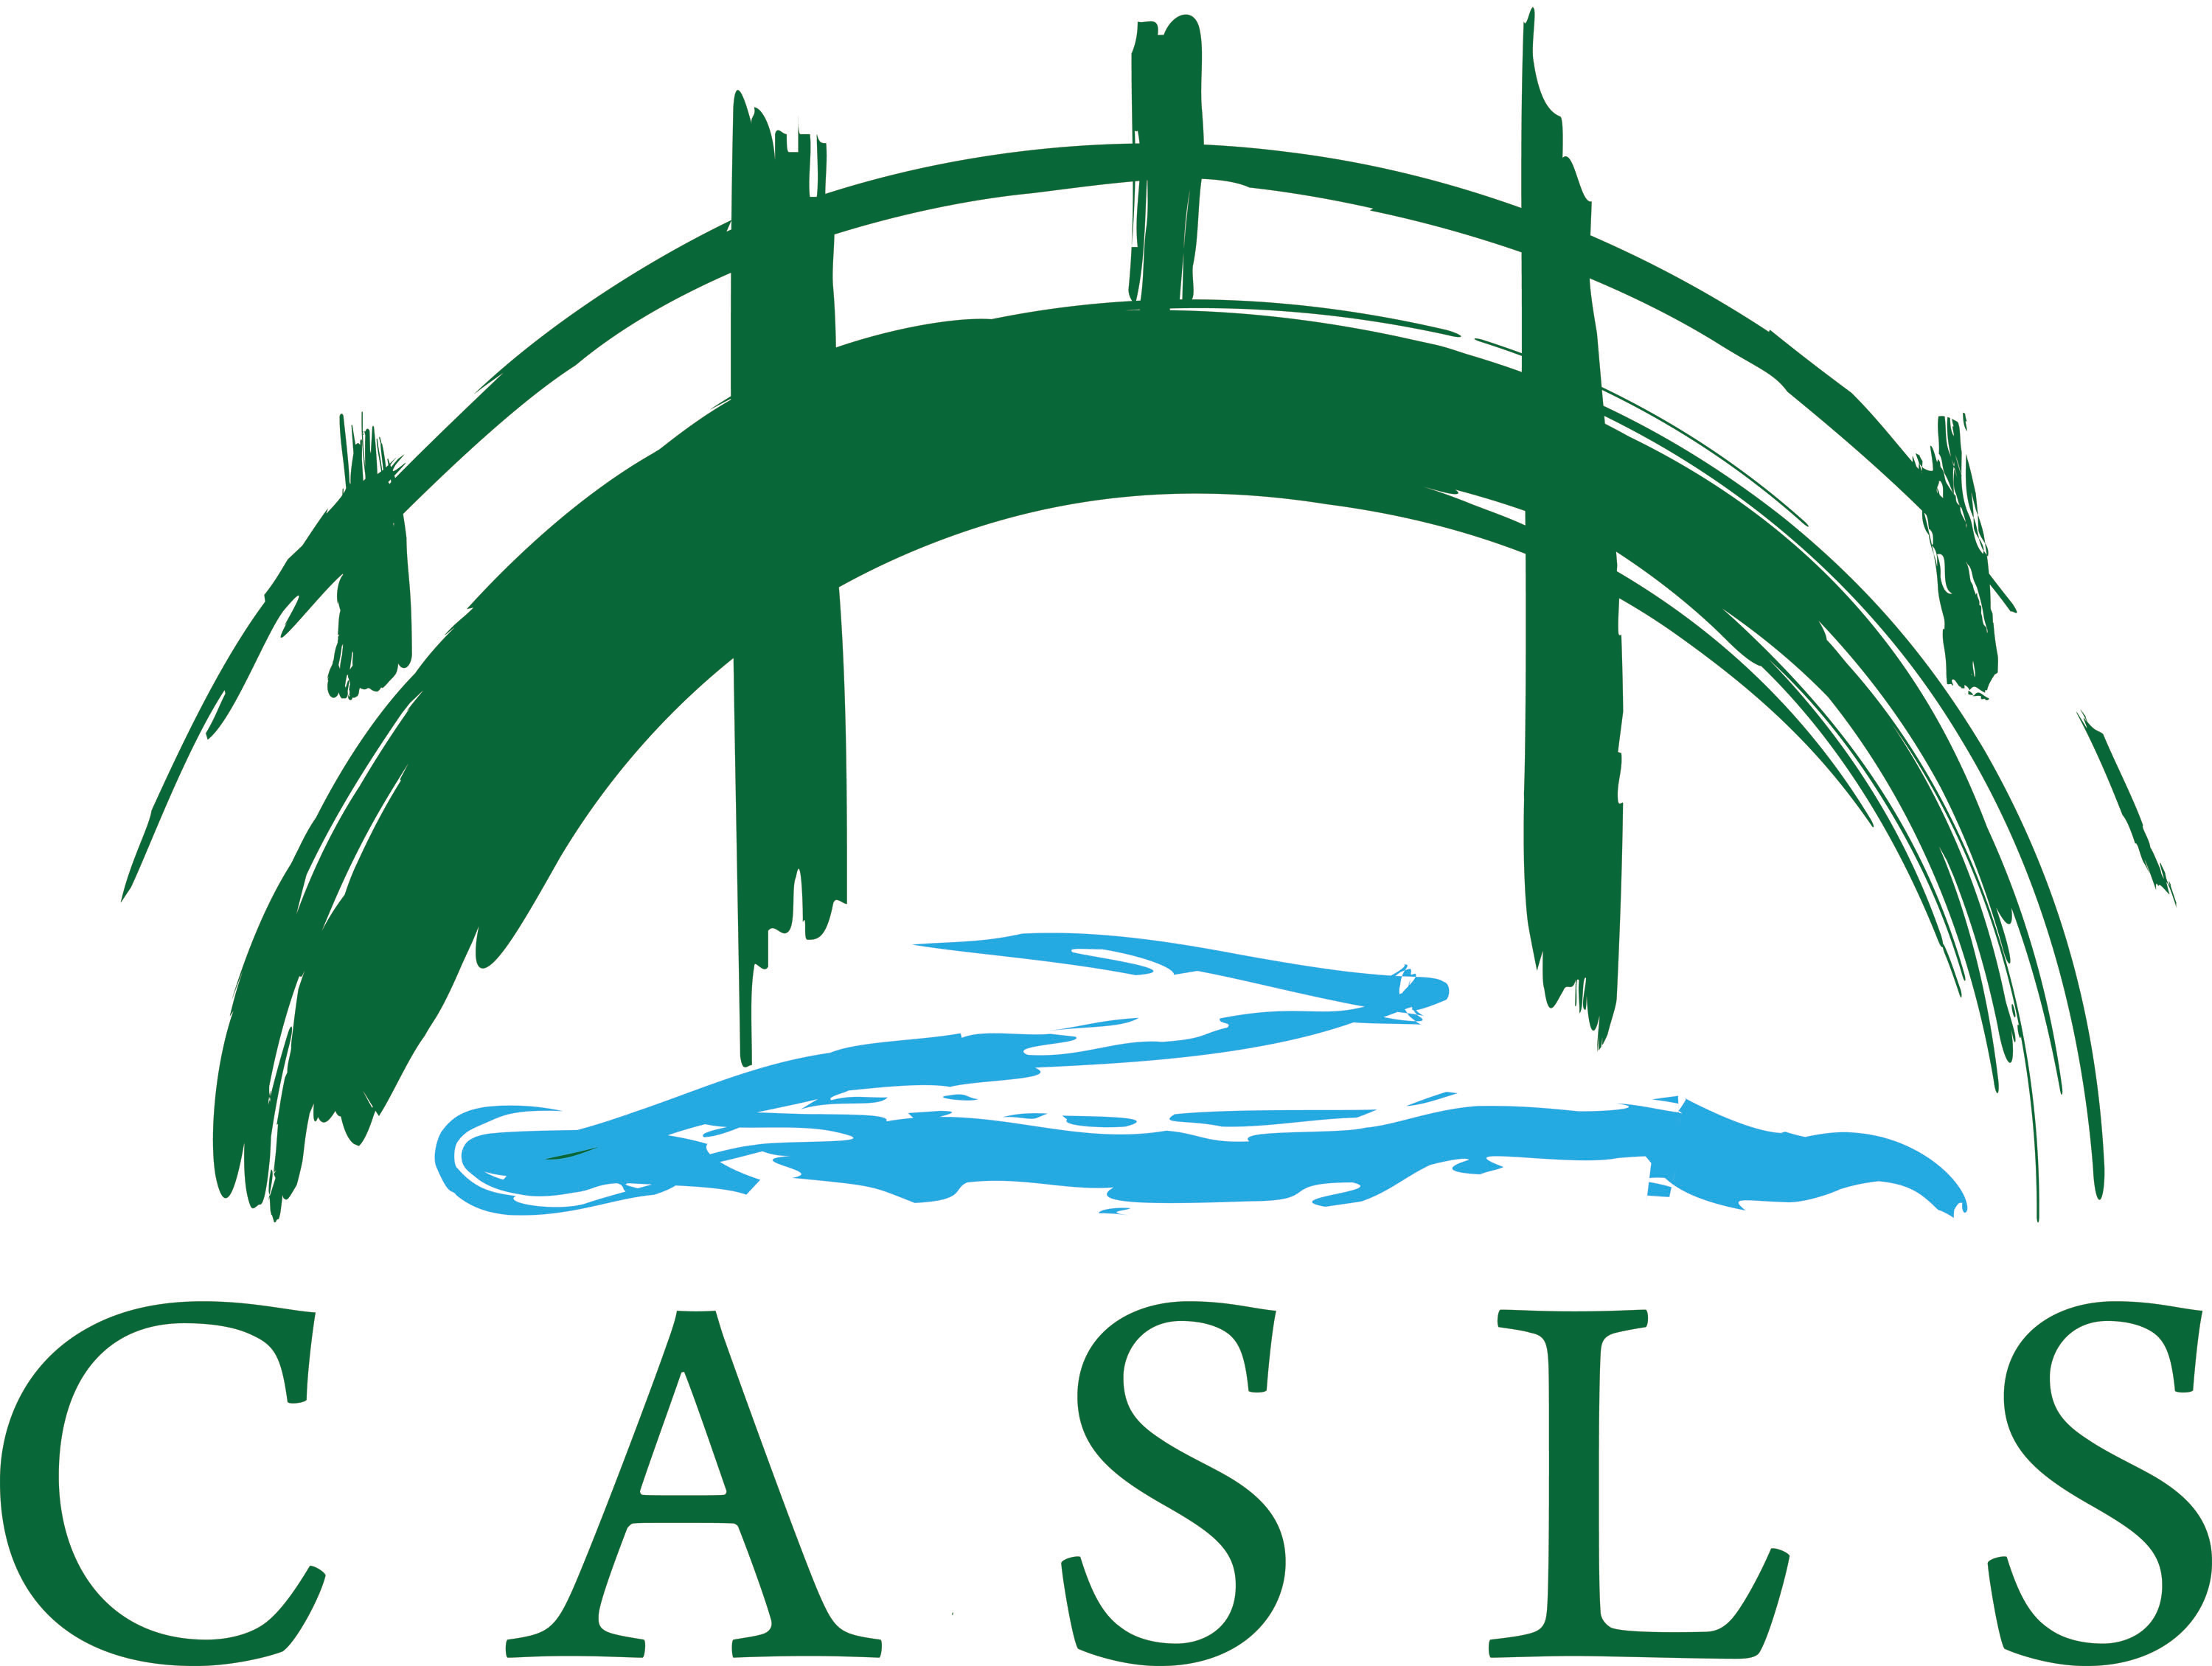 Logo for the University of Oregon Center for Applied Second Language Studies. Features the acronym CASLS in forest green block letters beneath a stylized green bridge with a blue river running underneath it. The image appears to have been painted with a brush.